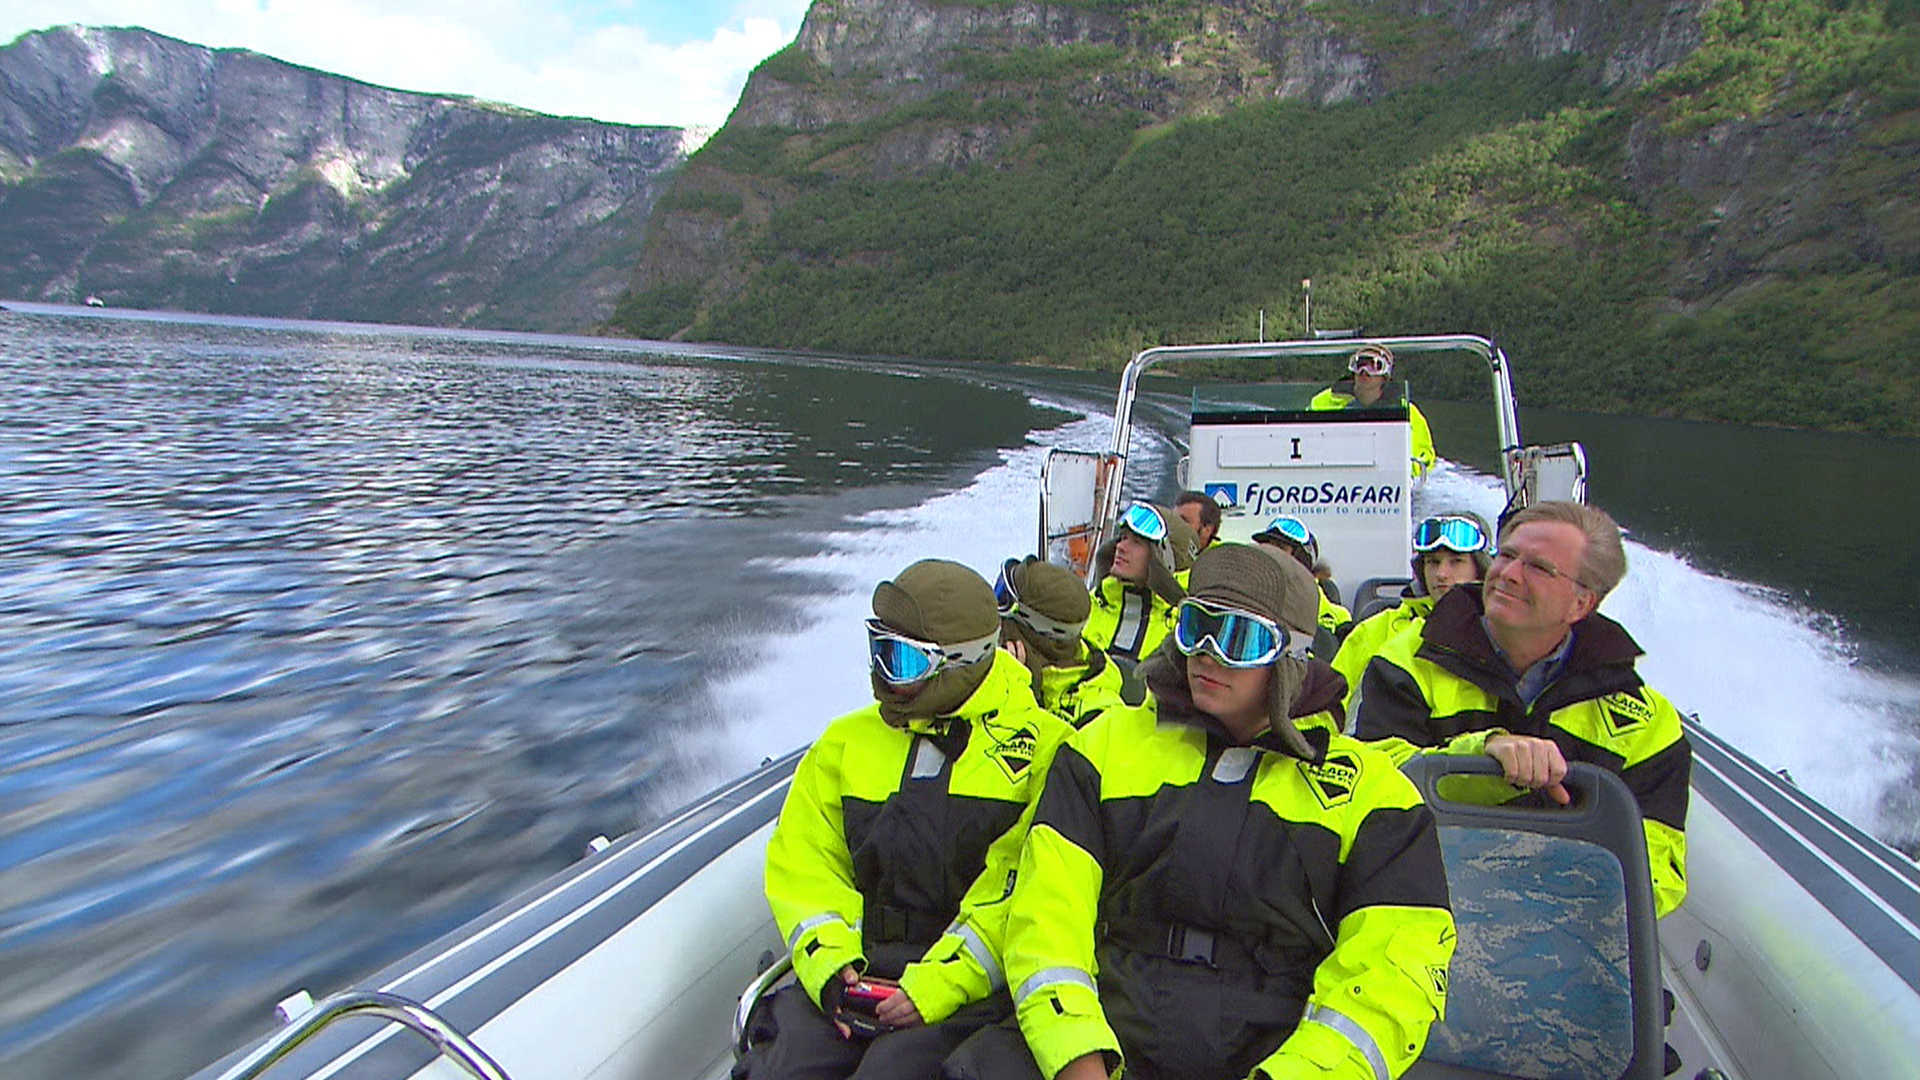 Rick Steves explores da fjords